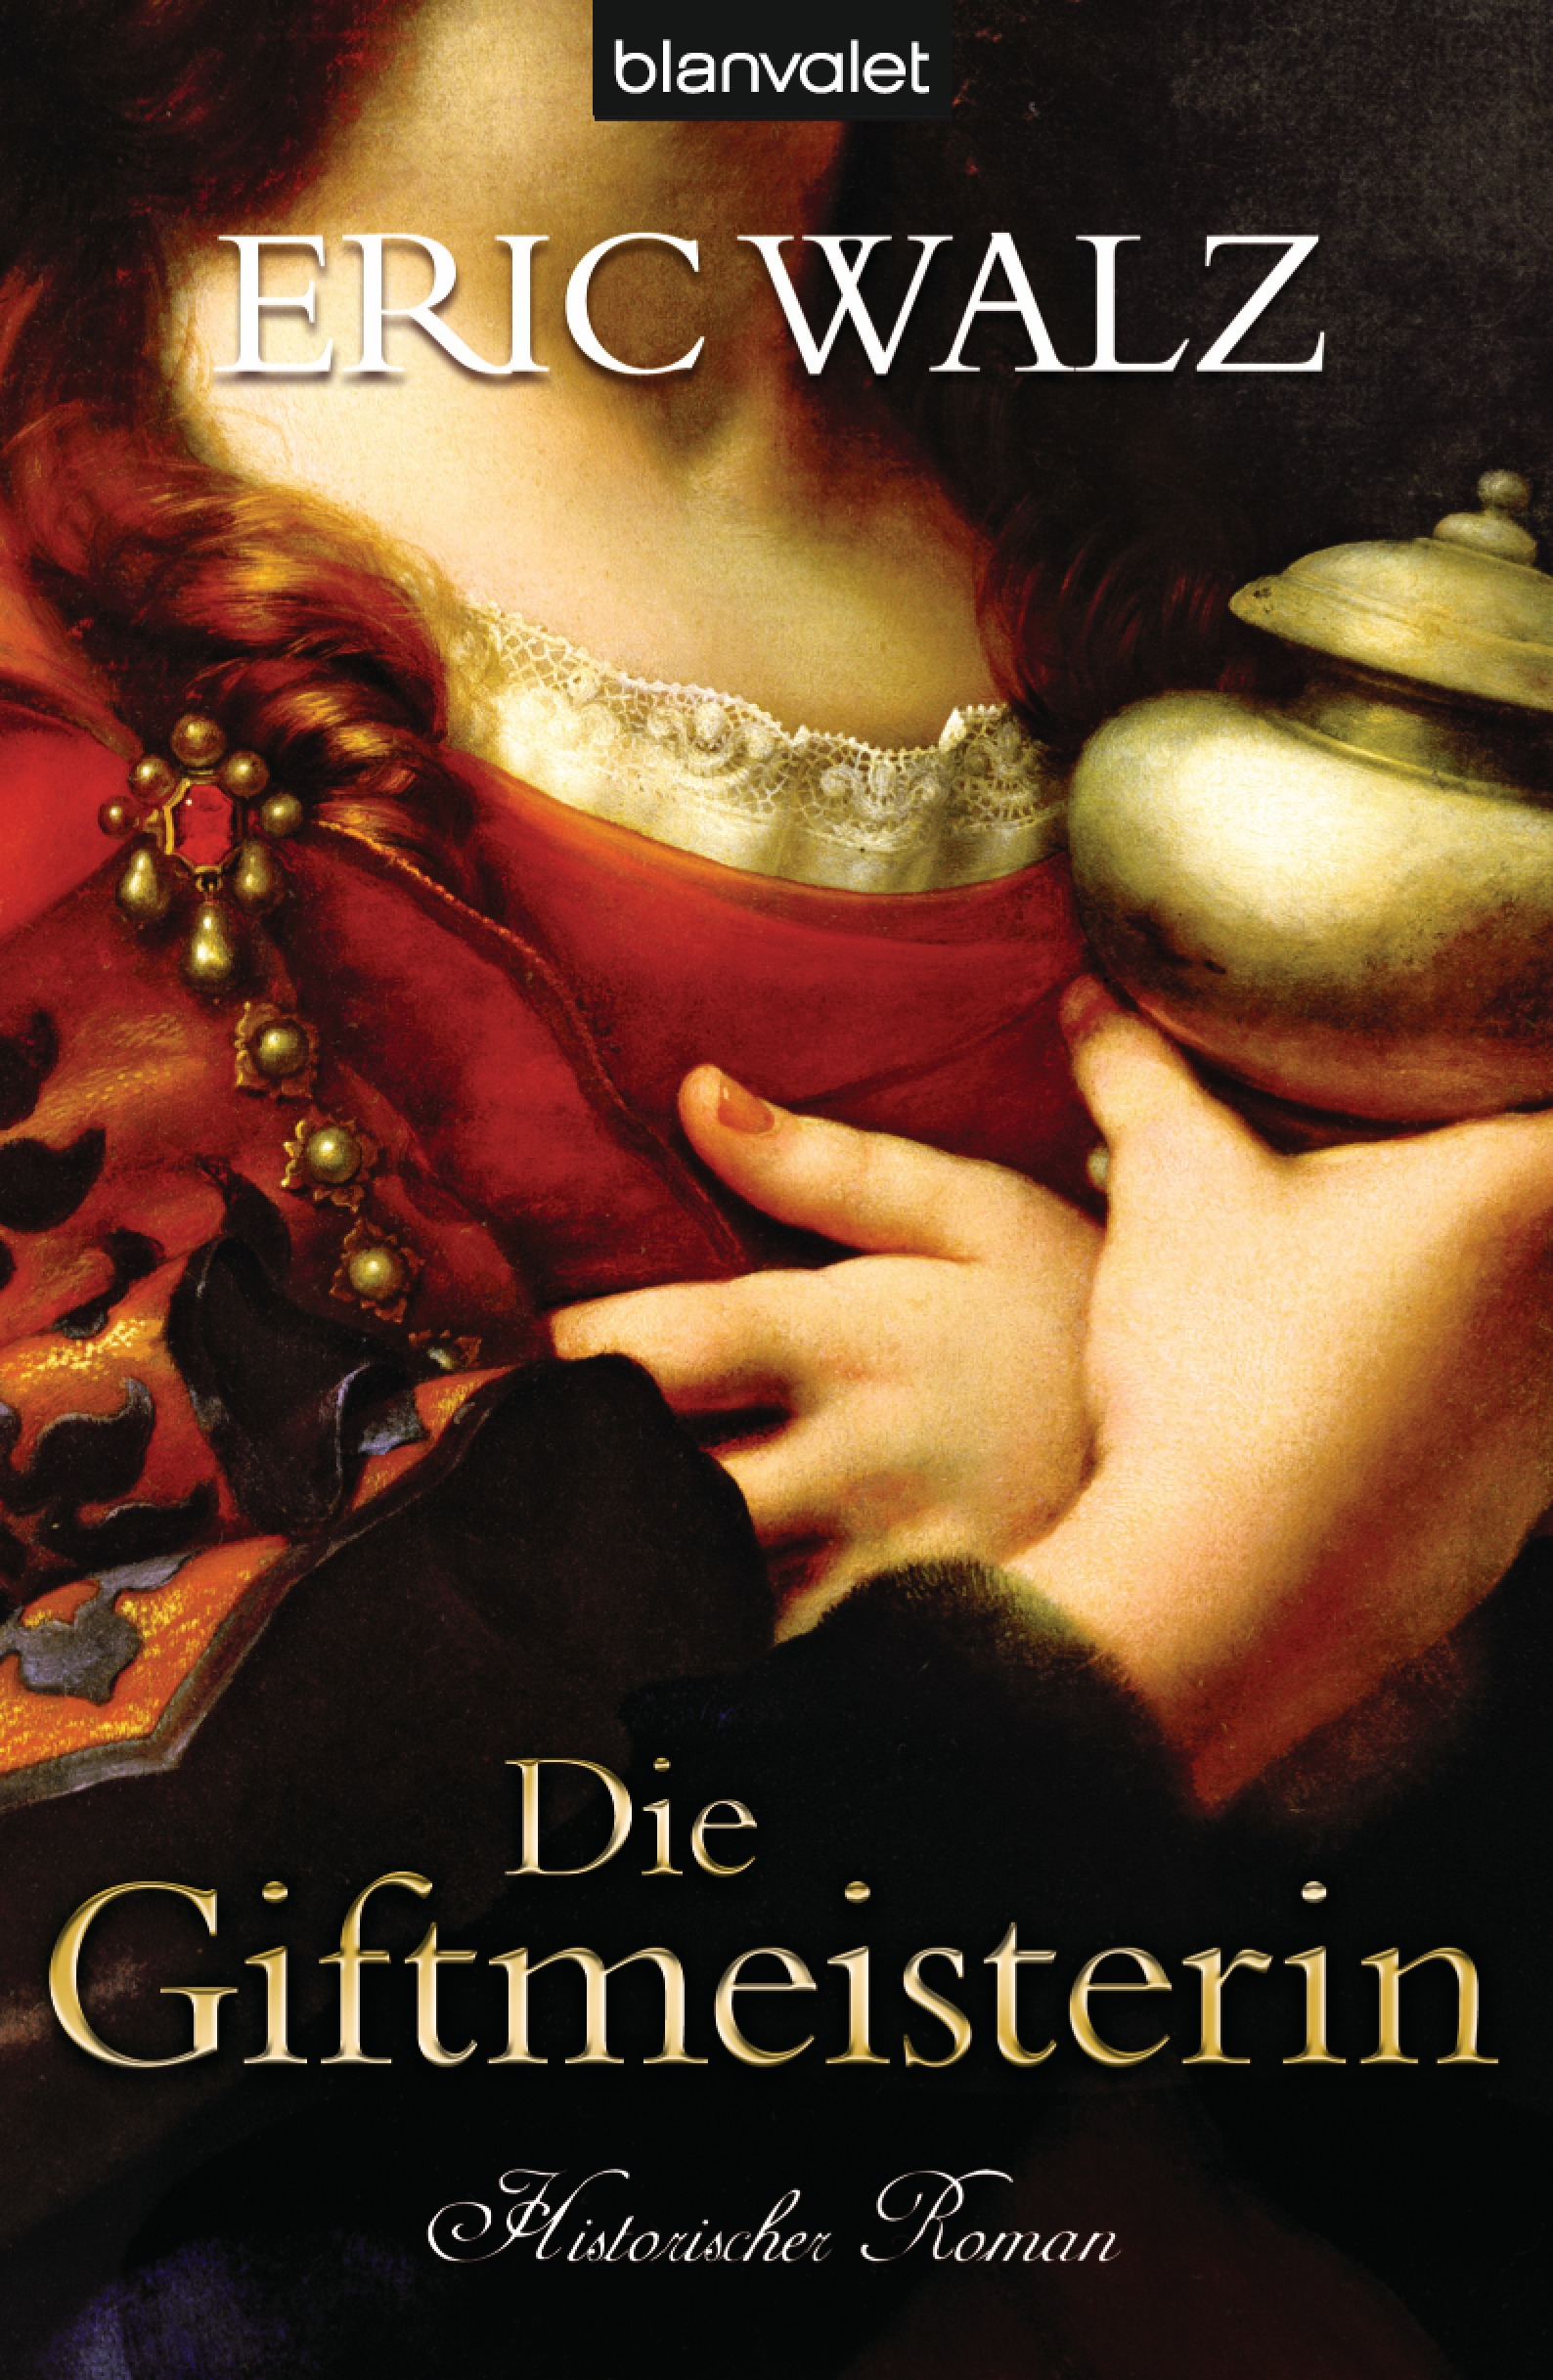 http://www.randomhouse.de/content/edition/covervoila_hires/Walz_EDie_Giftmeisterin_102363.jpg